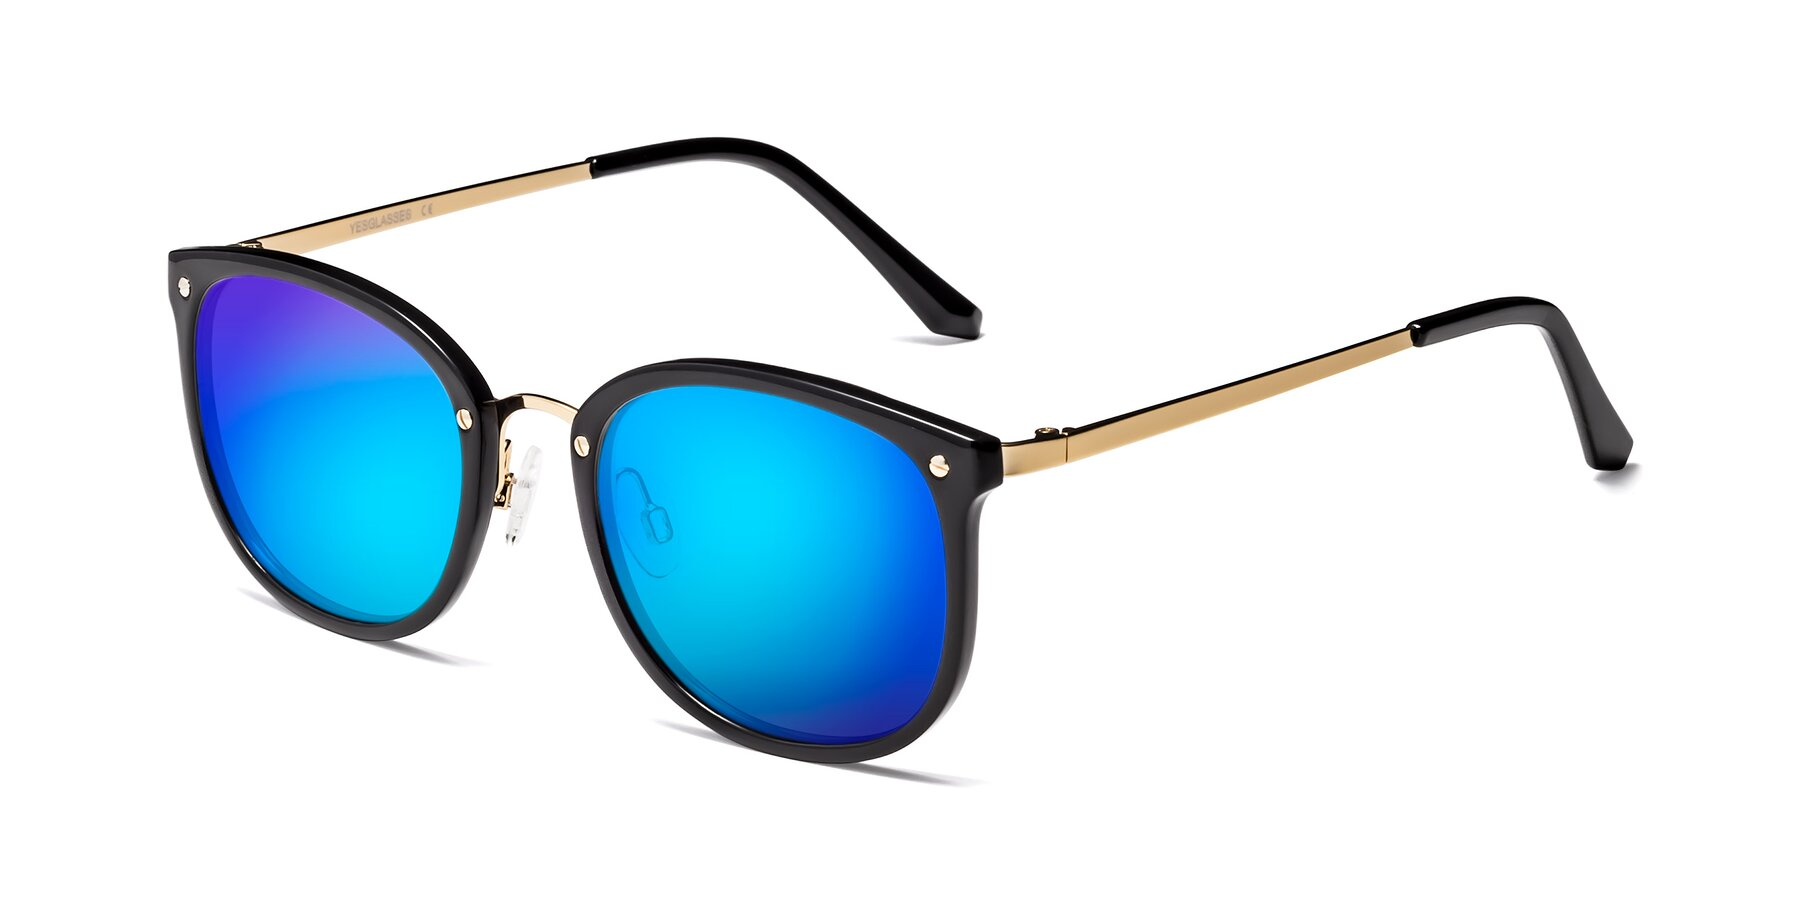 Angle of Timeless in Black-Gold with Blue Mirrored Lenses